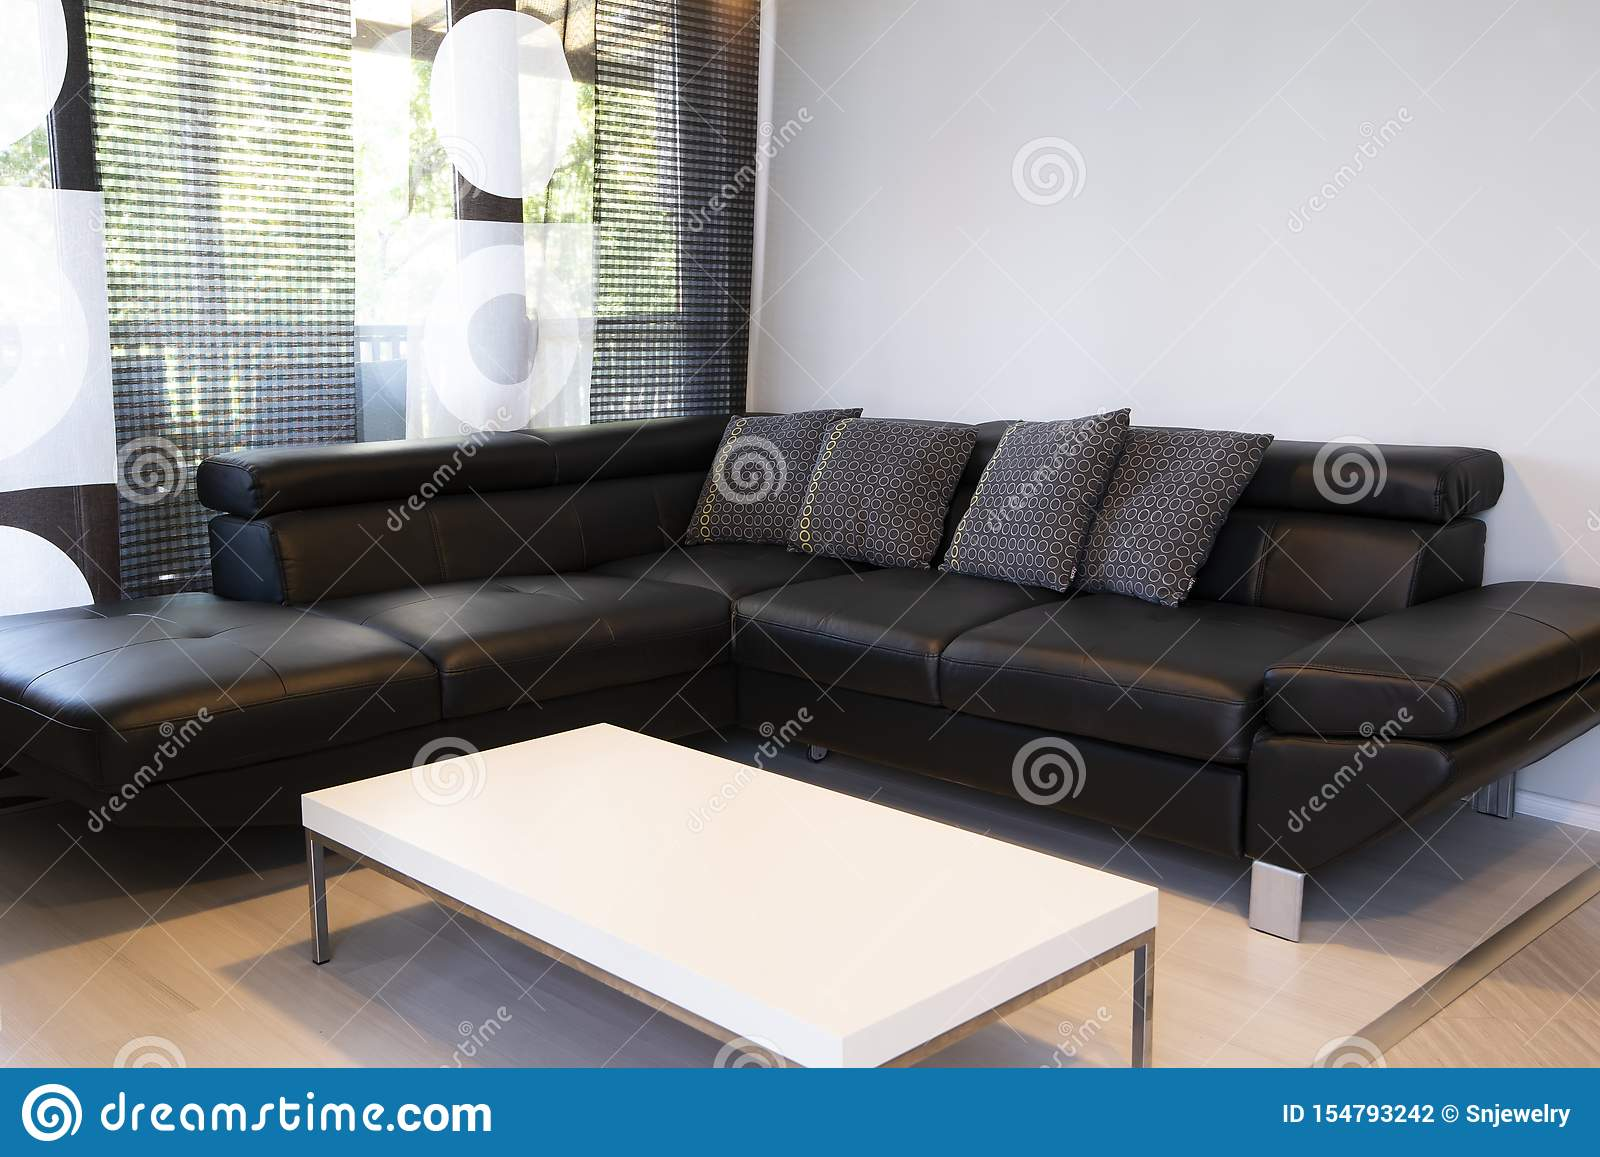 Commercial Office Paint Color Ideas, Modern Interior Of Living Room With Comfortable Black Leather Sofa Stock Photo Image Of Background Indoor 154793242